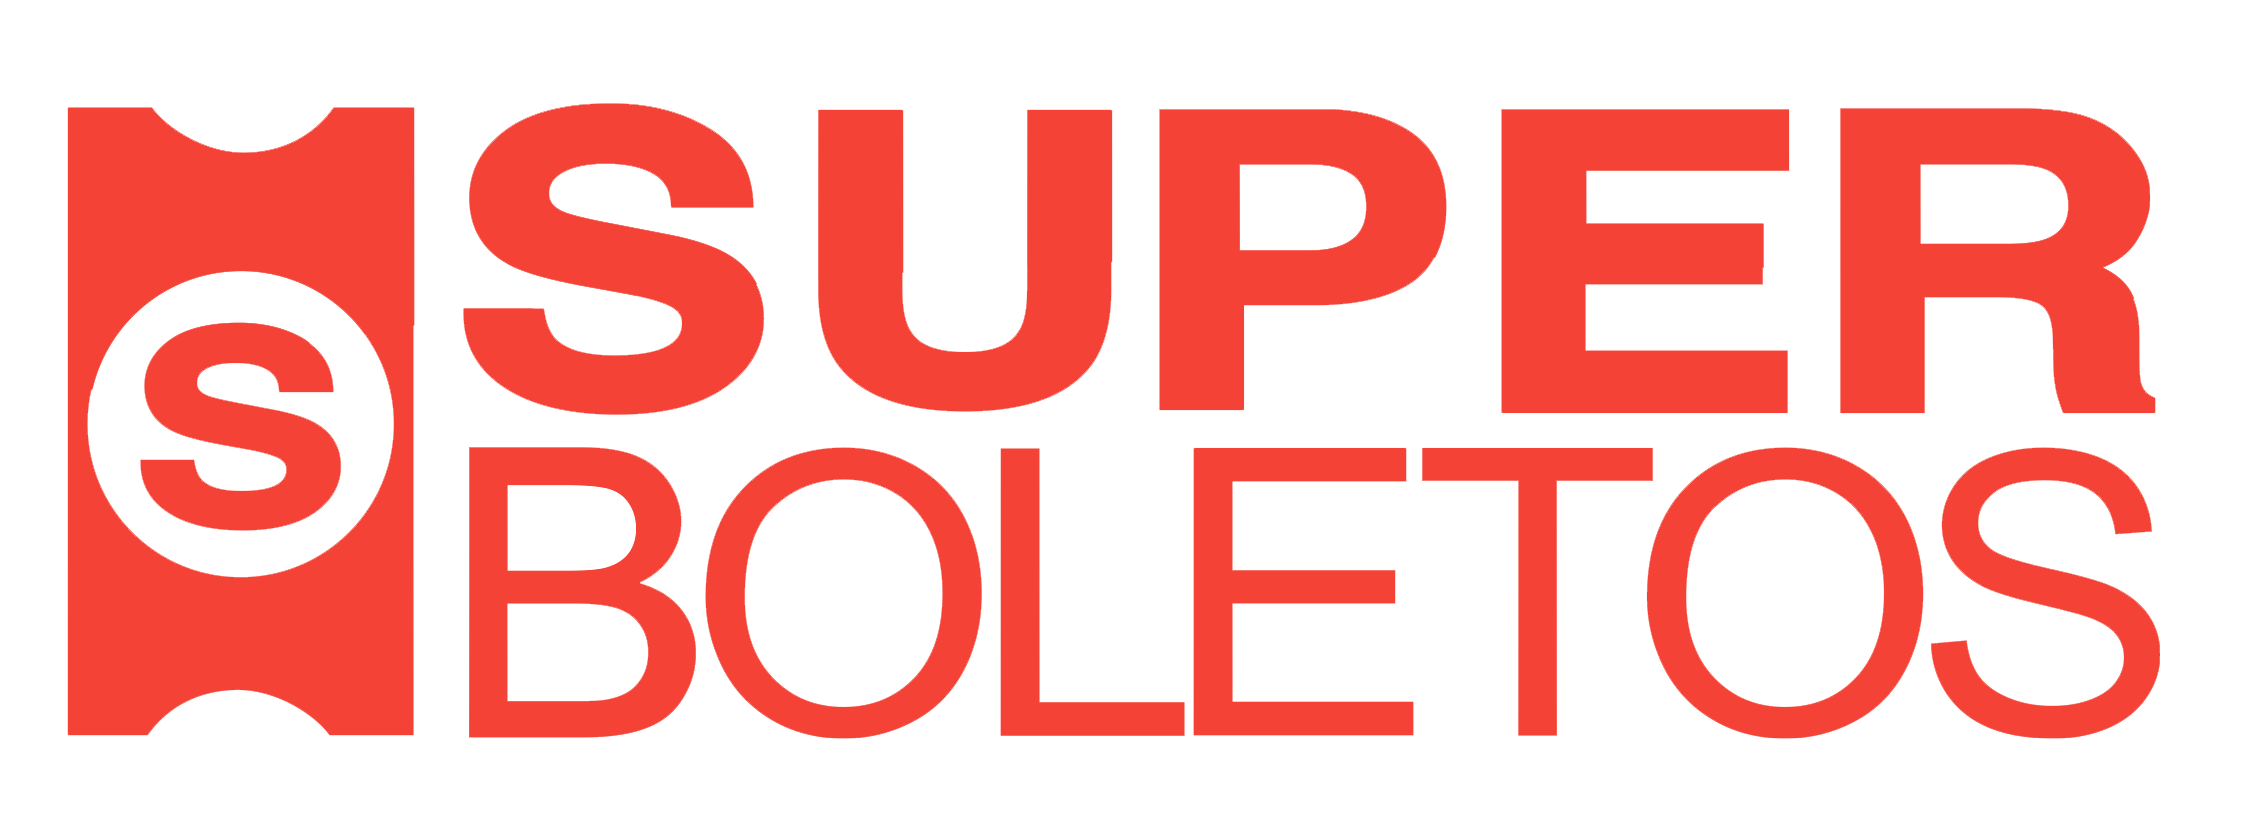 Superboletos